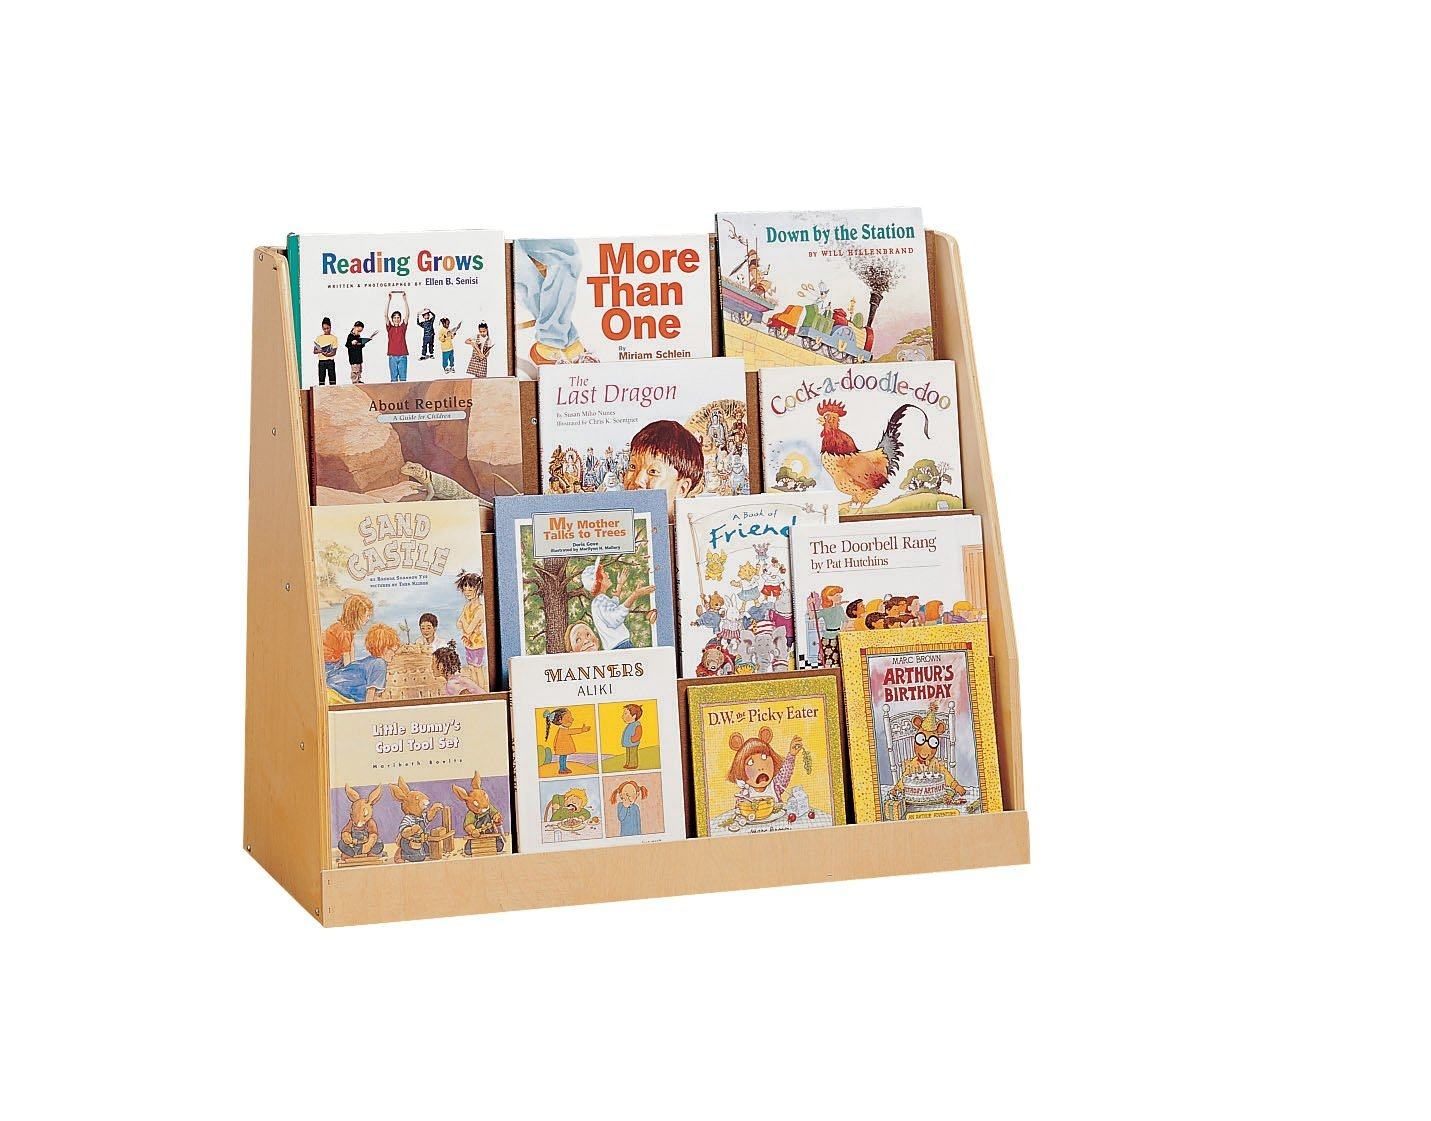 Childcraft 521162N 4 Shelf Book Display, 36 x 11-3/4 x 29 Inches Height,11.75 Inches Width,36 Inches Length,Natural Wood